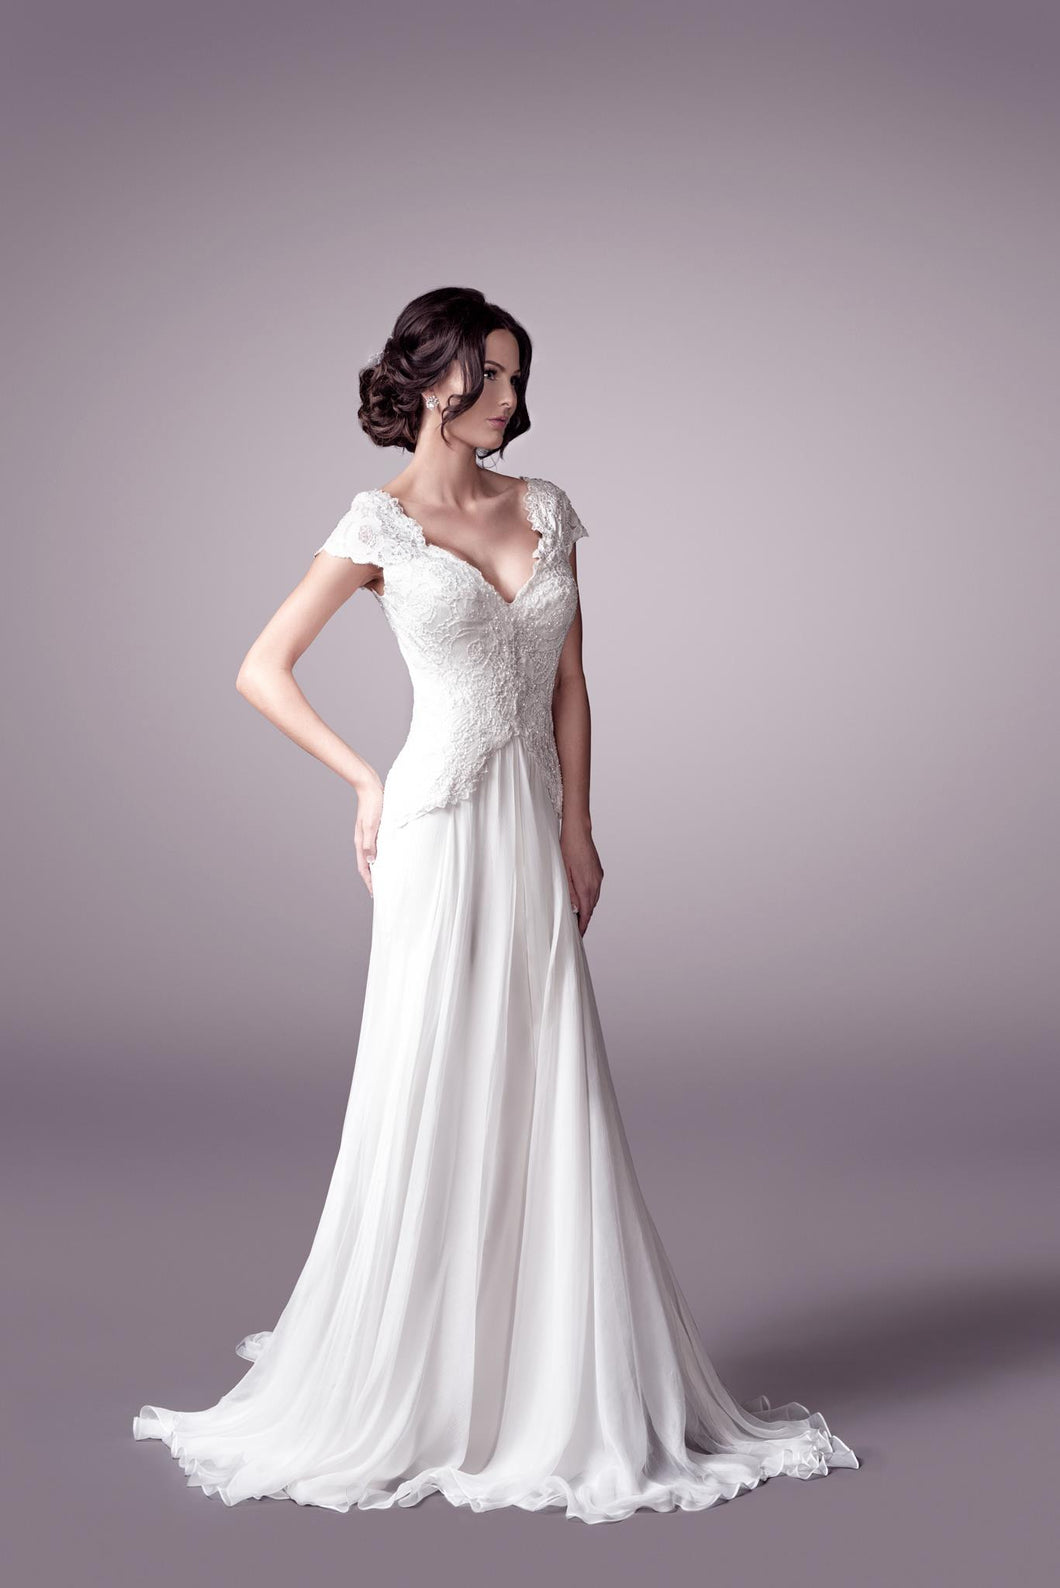 Aria wedding dress bridal gown Perth - 9310F